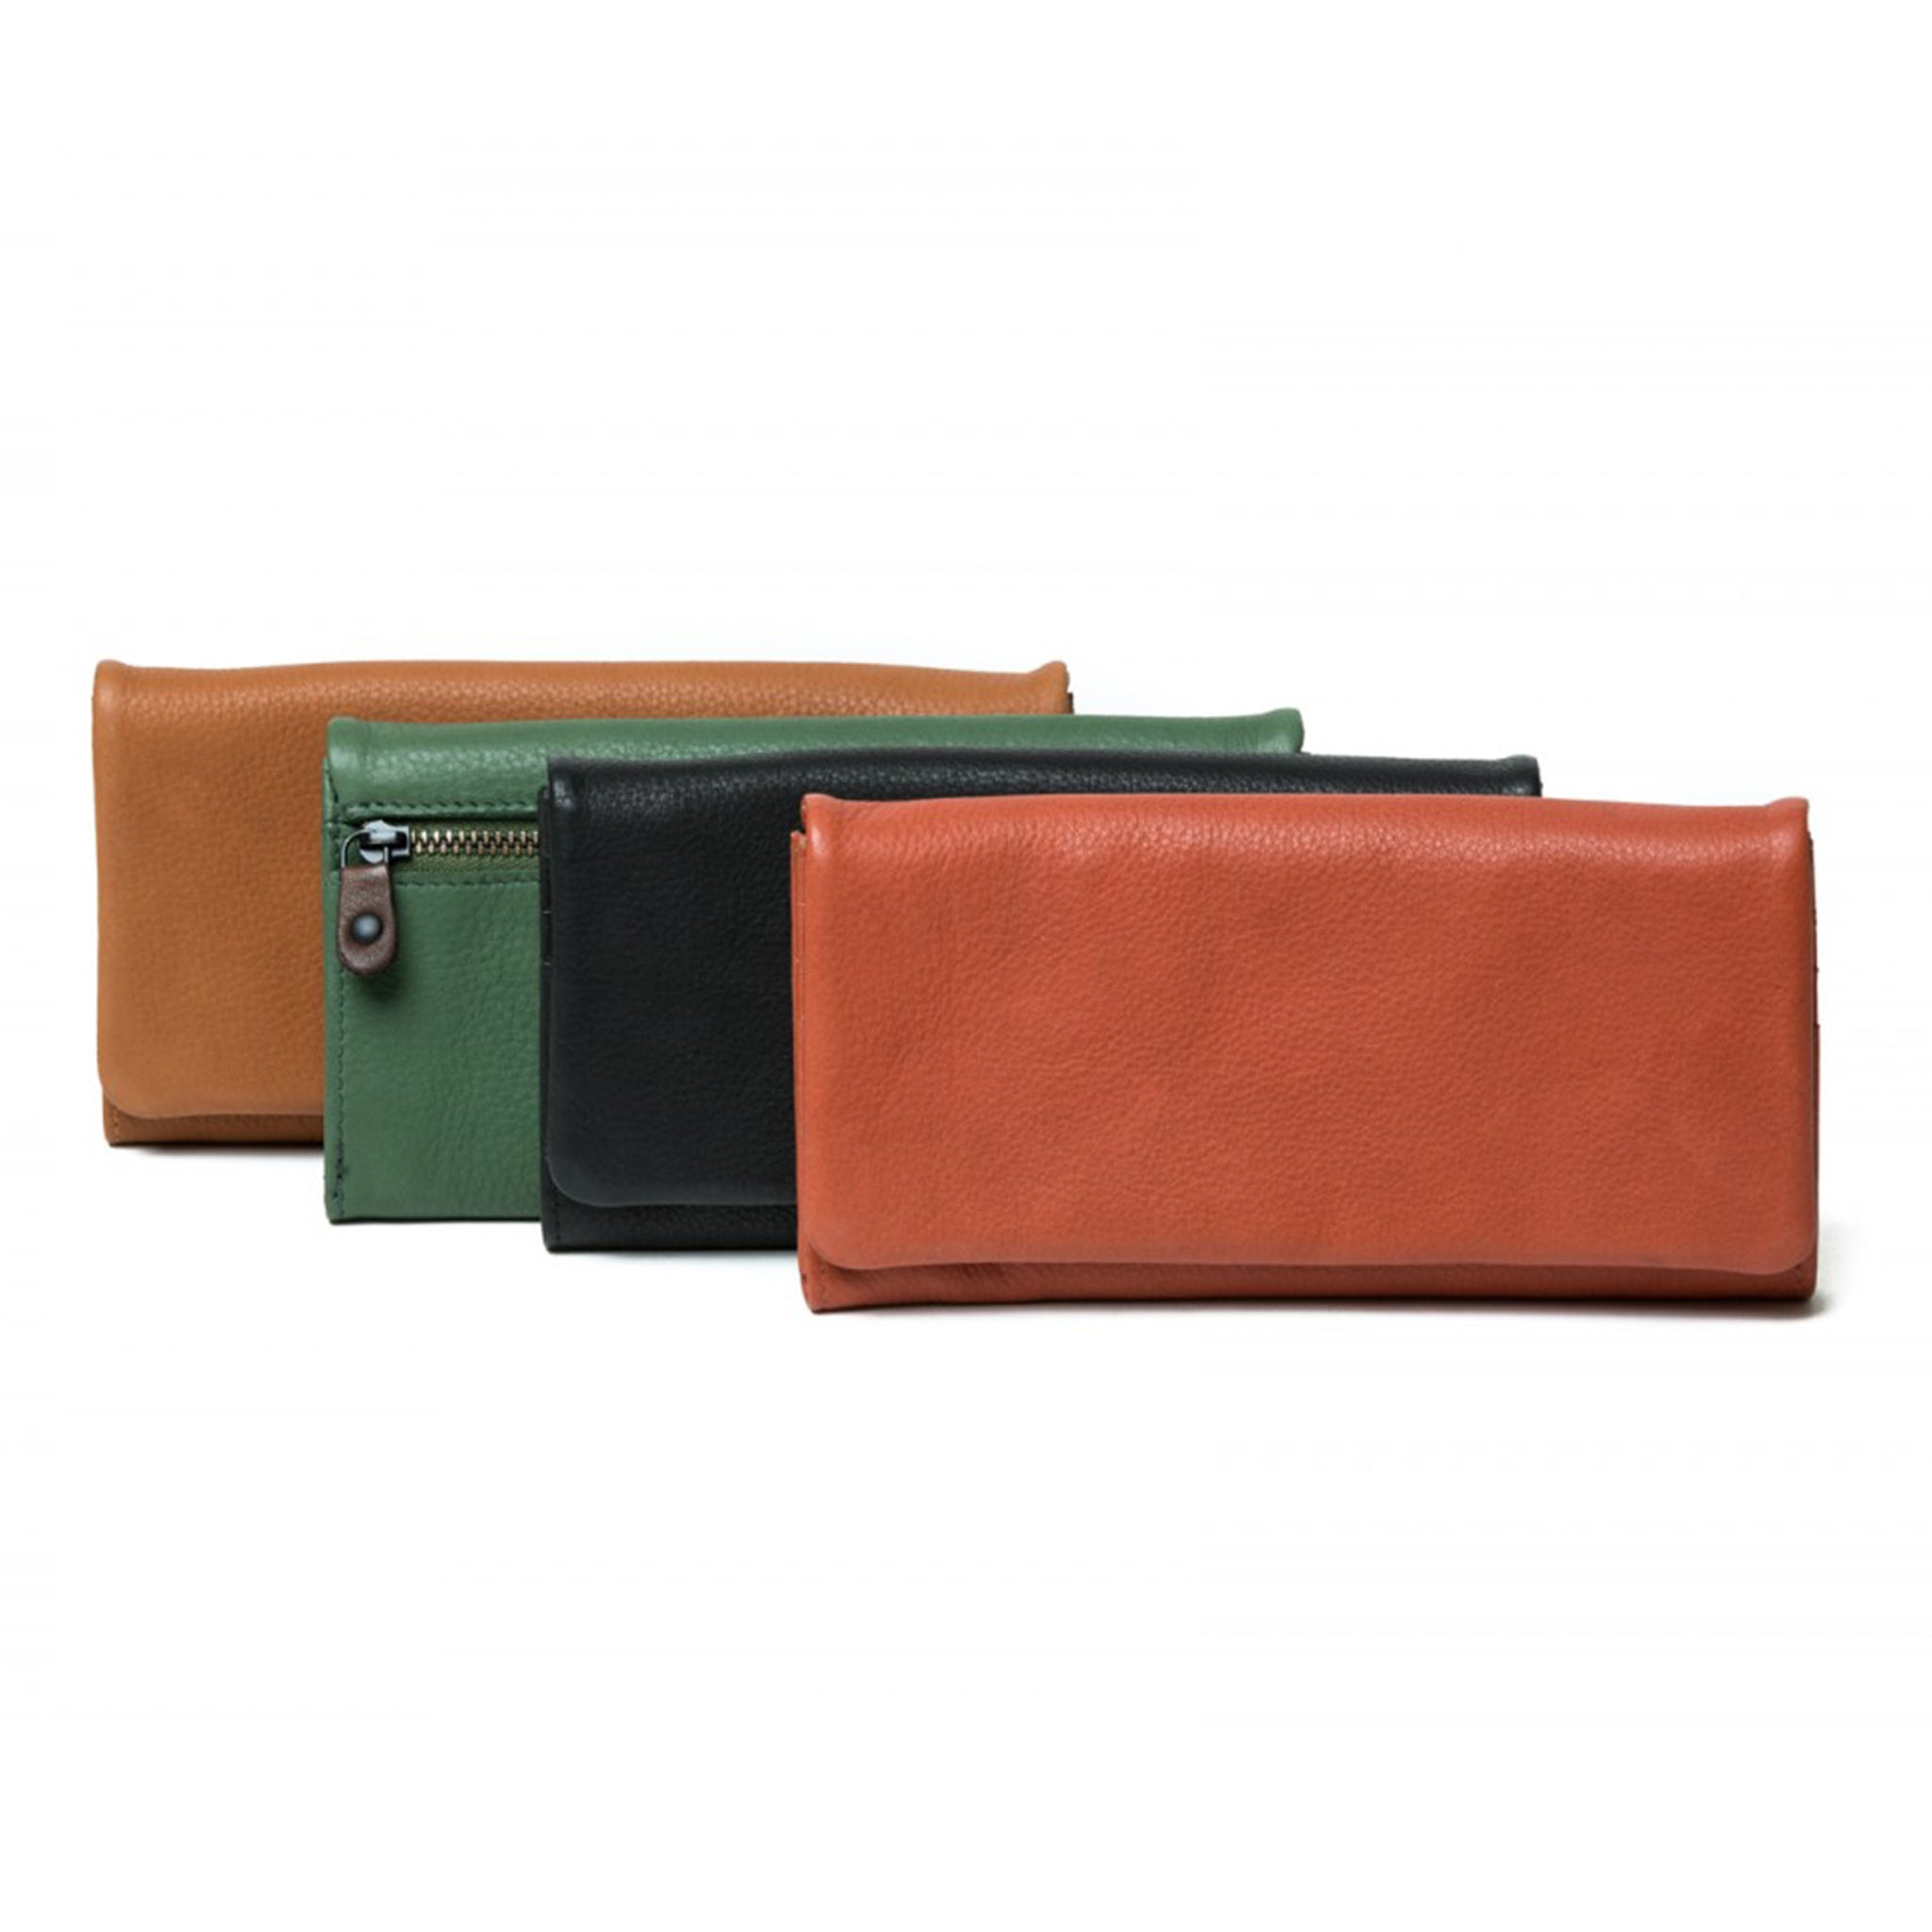 Scarlet wallet by Oran Leather. Slim-line, soft leather, ladies wallet. Hidden magnets under flap. - 12 card slots. - 4 note sections - Back external zip for coins. - RFID - Cotton 'jeans' lining. Product Dimension Length: 18 Centimeters Height: 10 Centimeters Width : 2.5 Centimeters